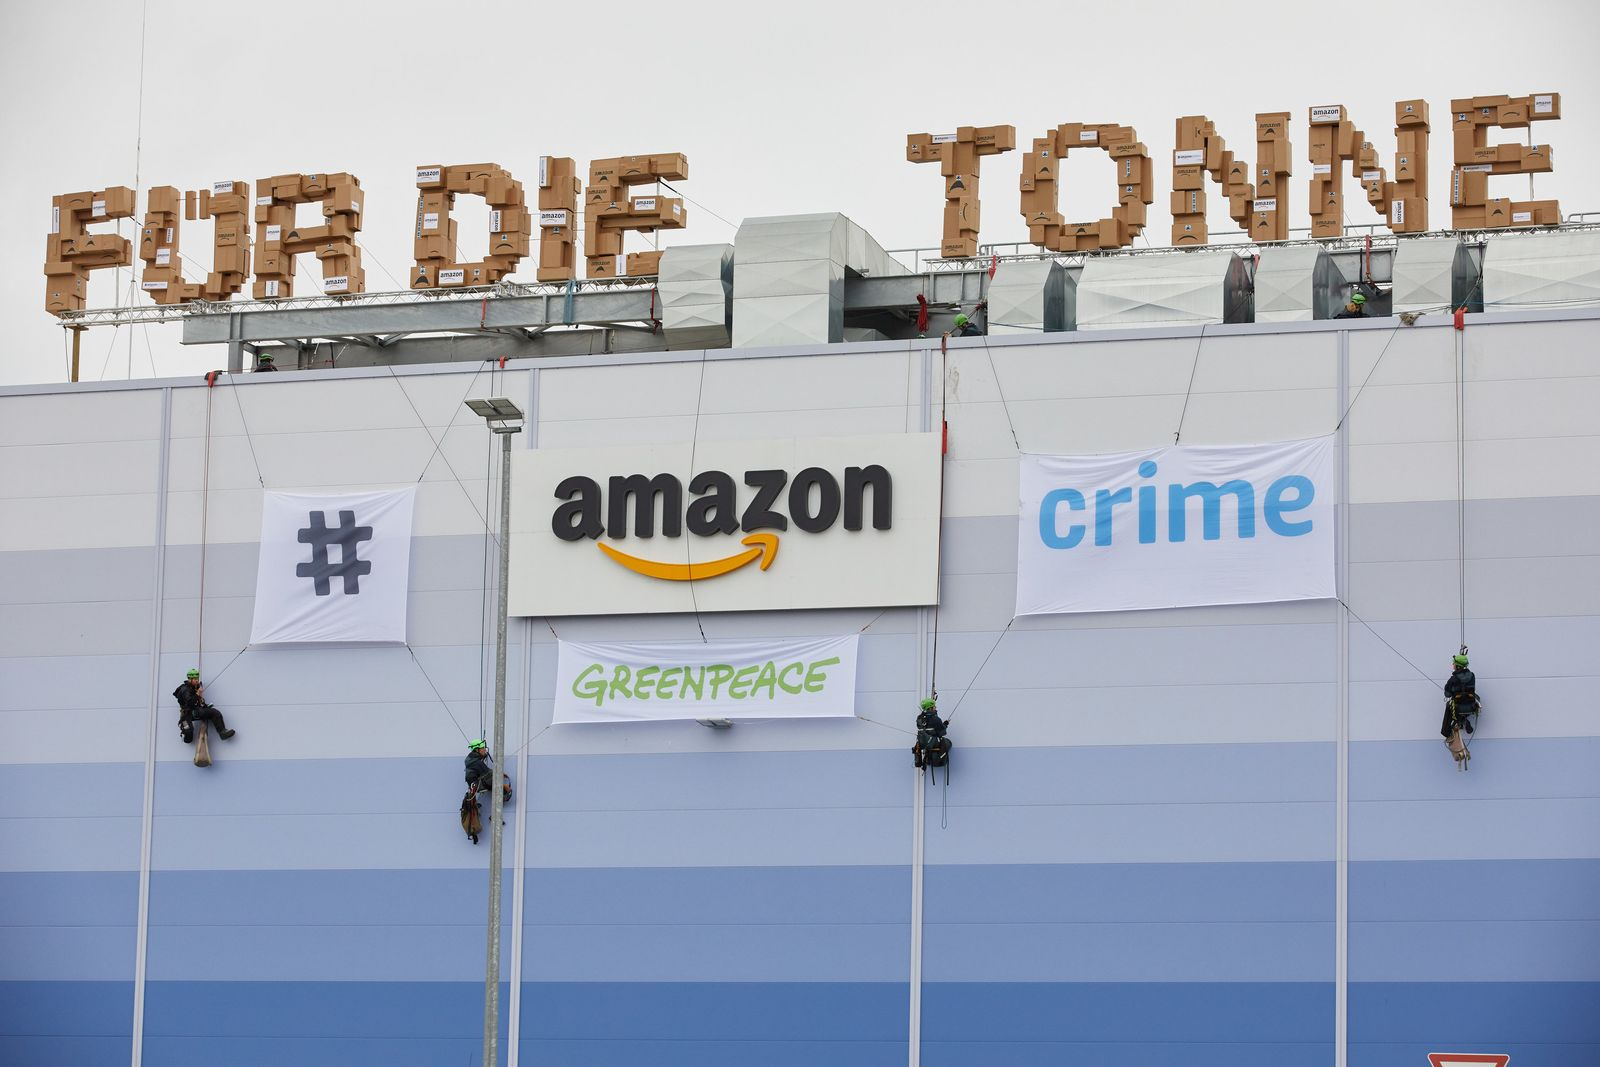 Greenpeace-Aktion zum Prime-Day